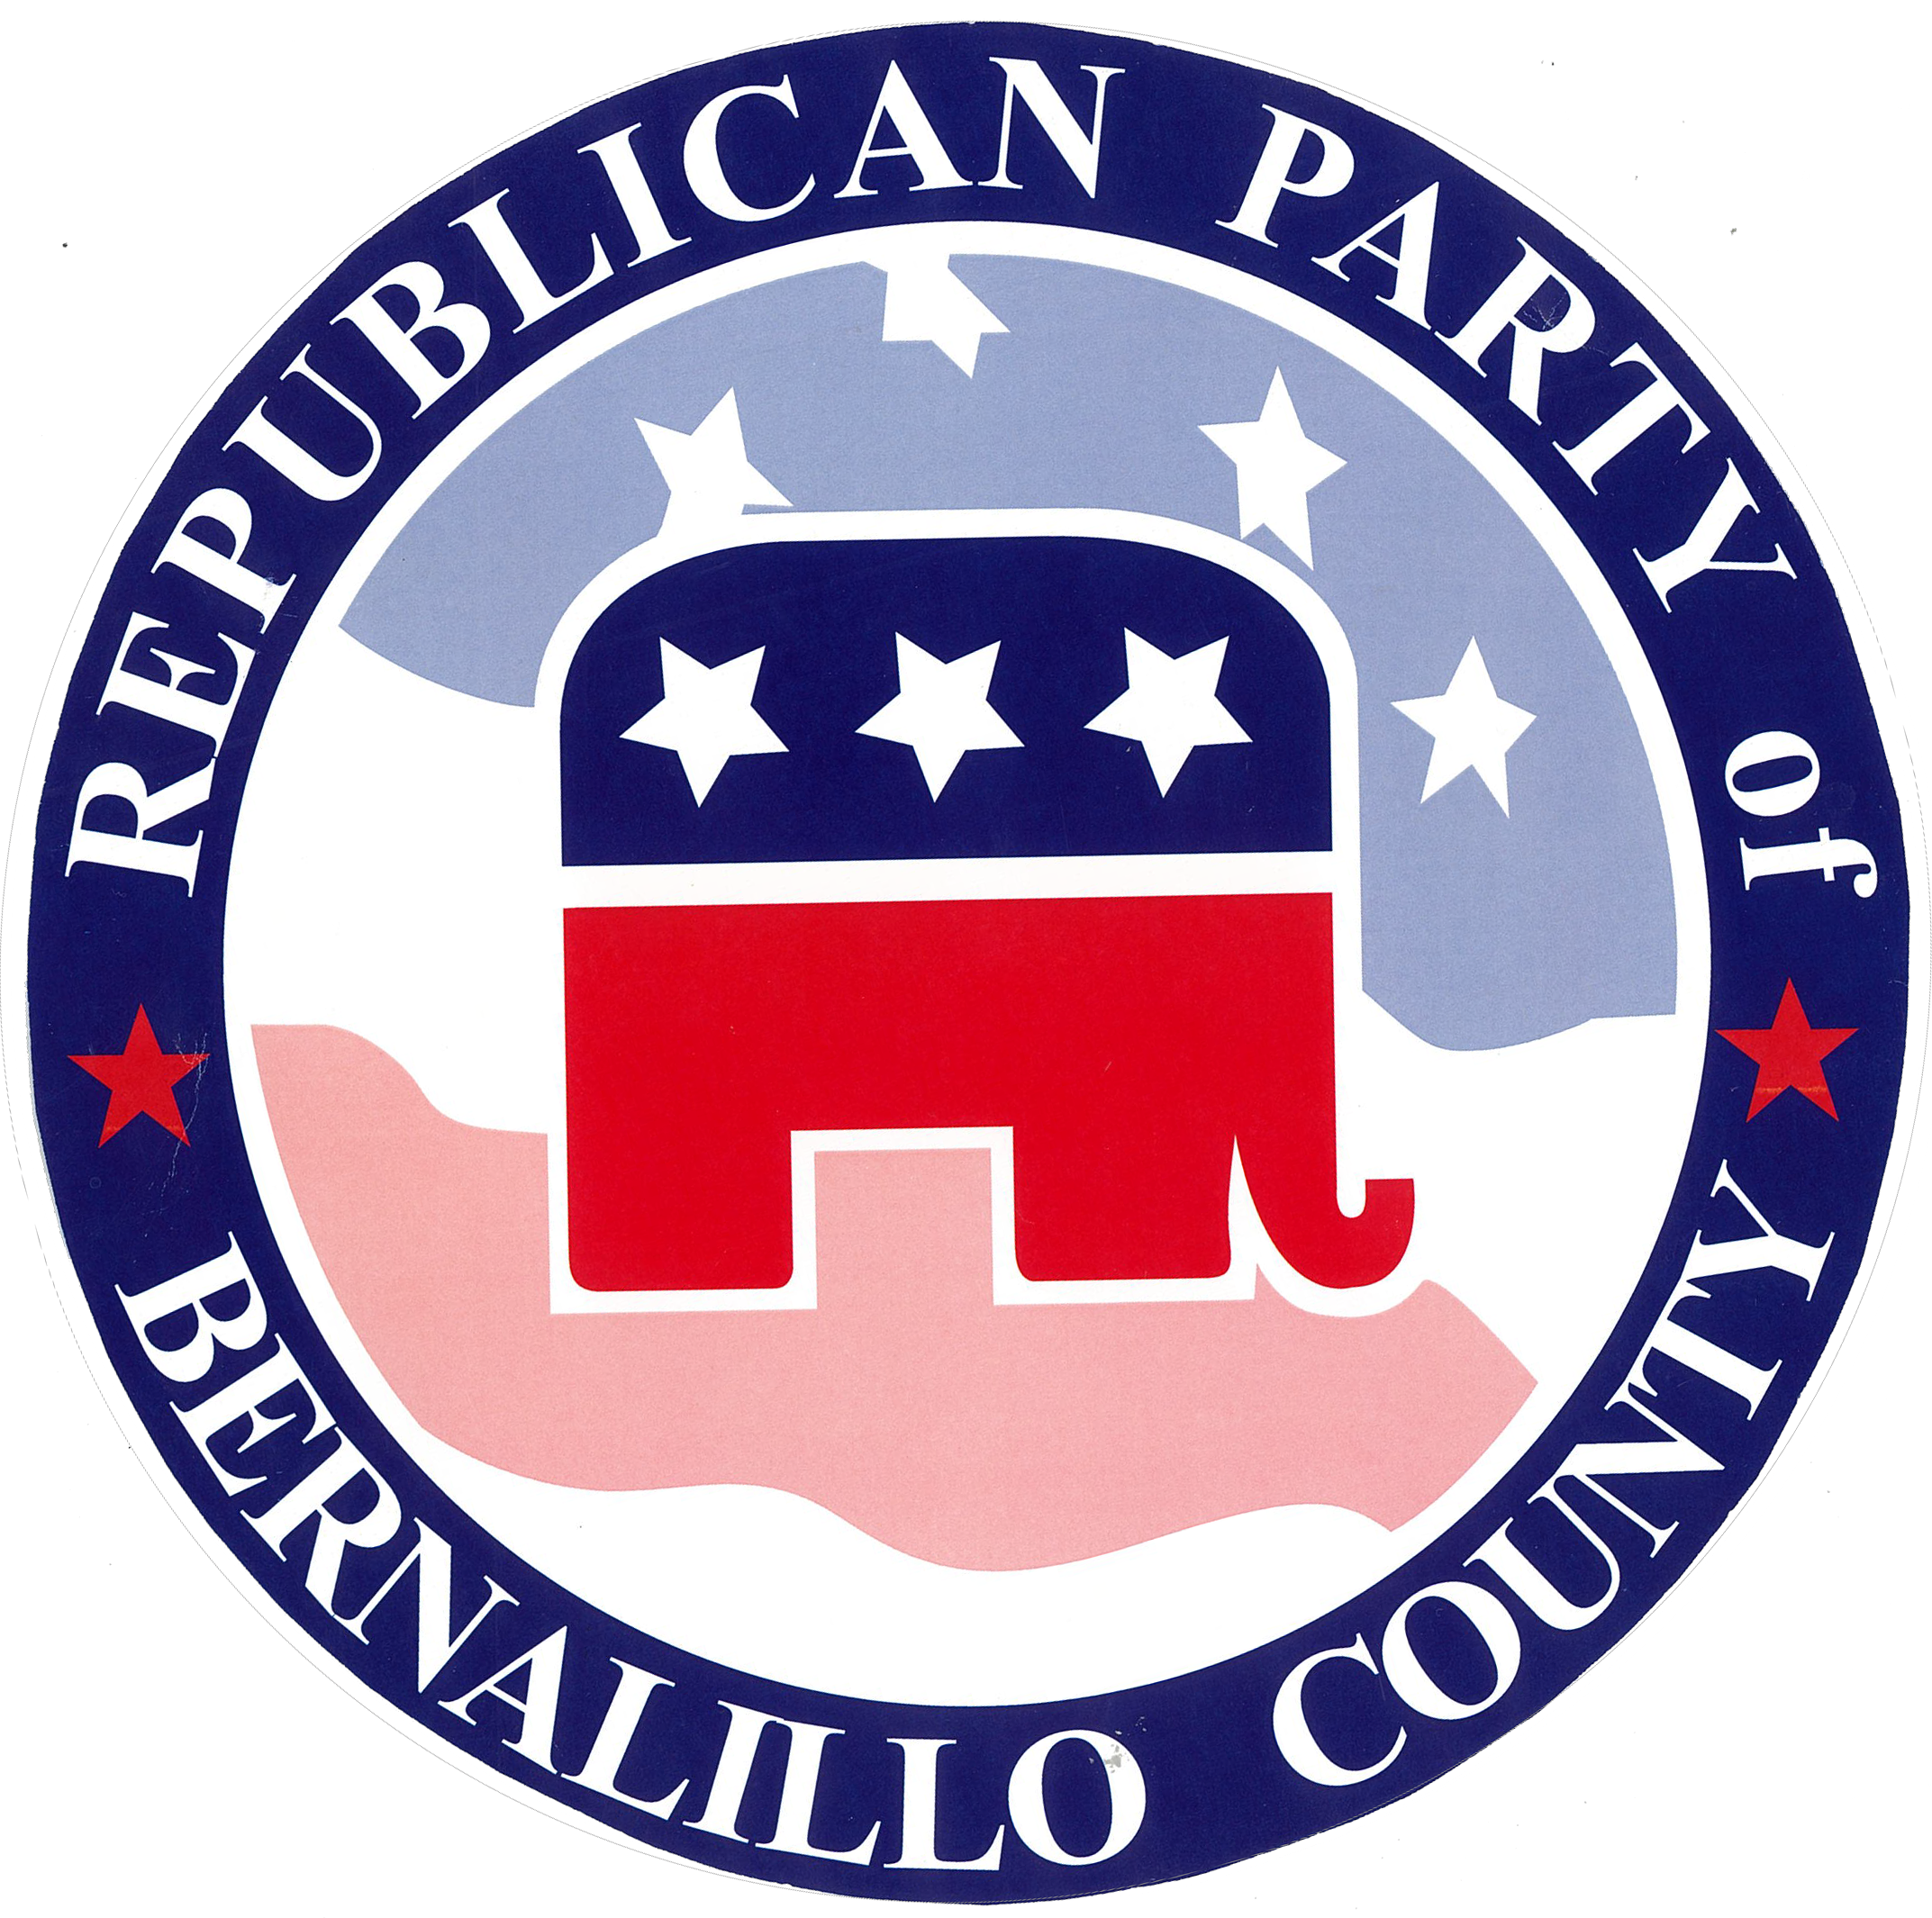 nm ward (State House Dist.) 27 republicans; next meeting – March 24th is cancelled. otherwise, the 4th Tuesday each month except December (April 28th TBD – check back as date approaches), 6:45 PM. Address: 8600 Academy Road NE (at Moon St.), room 407 (Adult Education Annex).